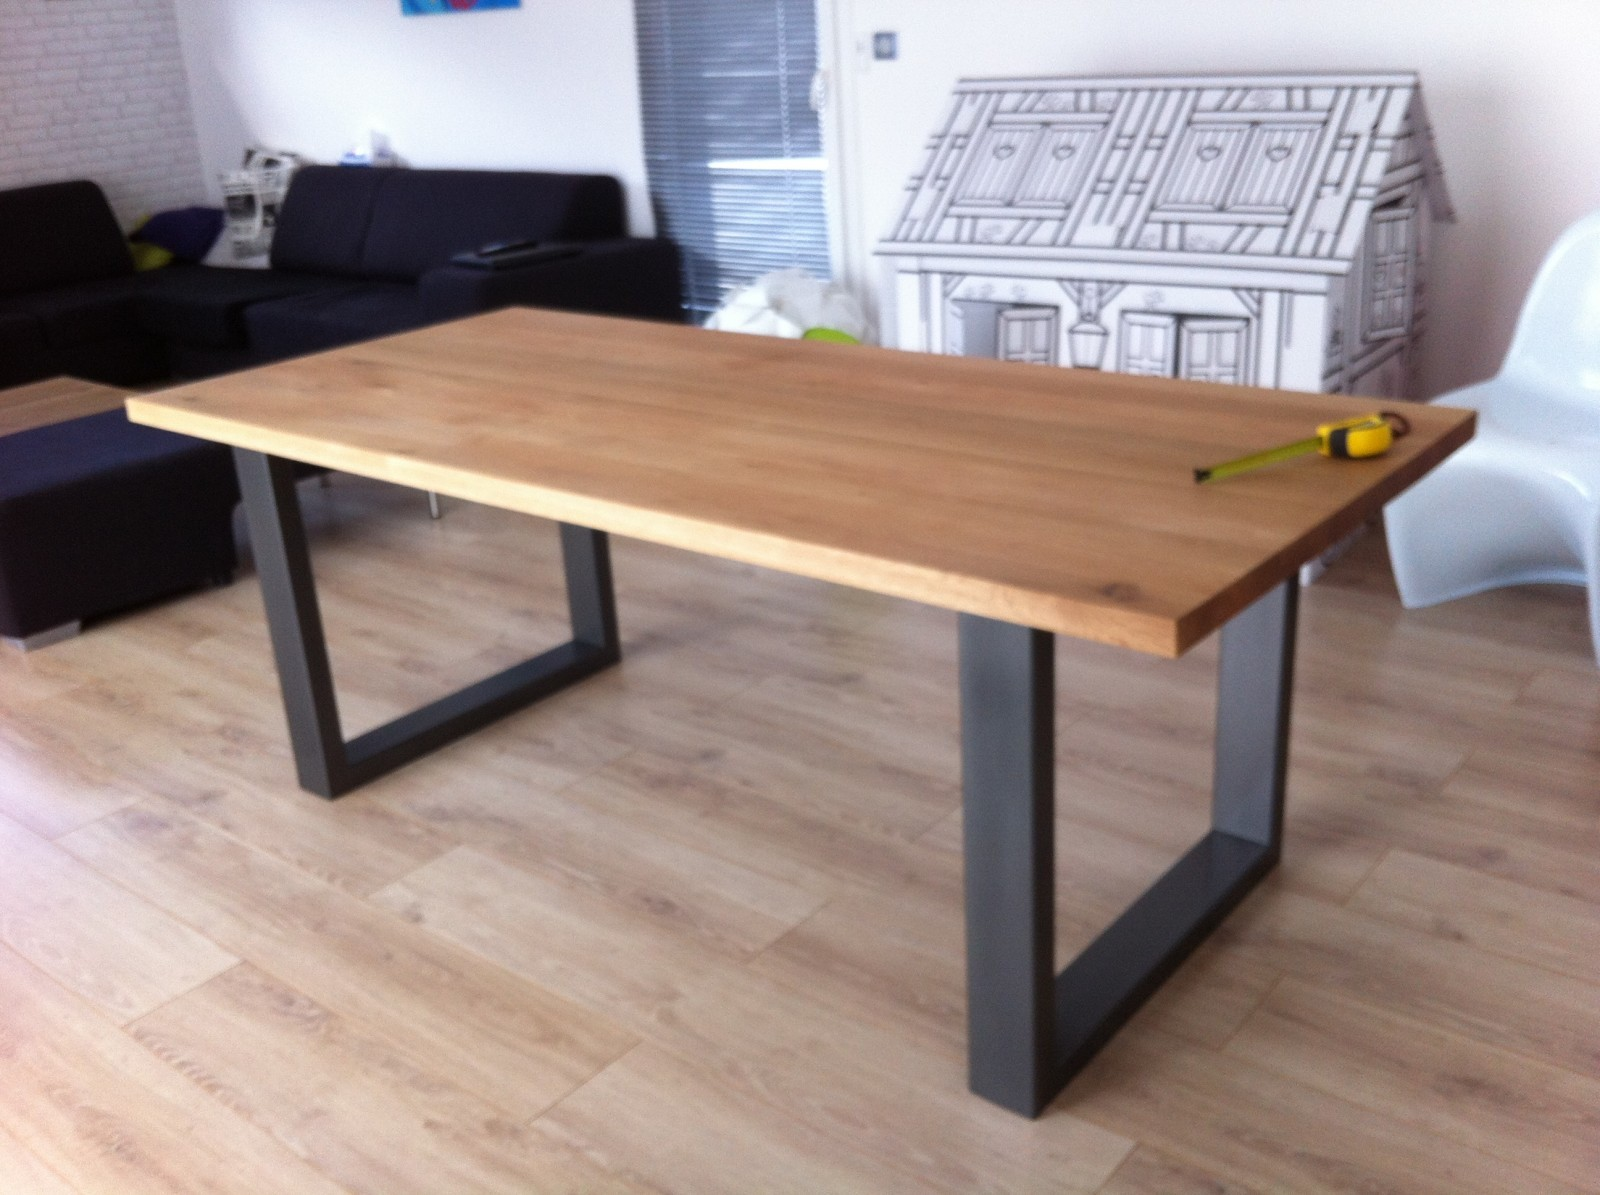 Table Pour Salon Plateau Pour Table A Manger En Bois Live Edge By Boleform Salon